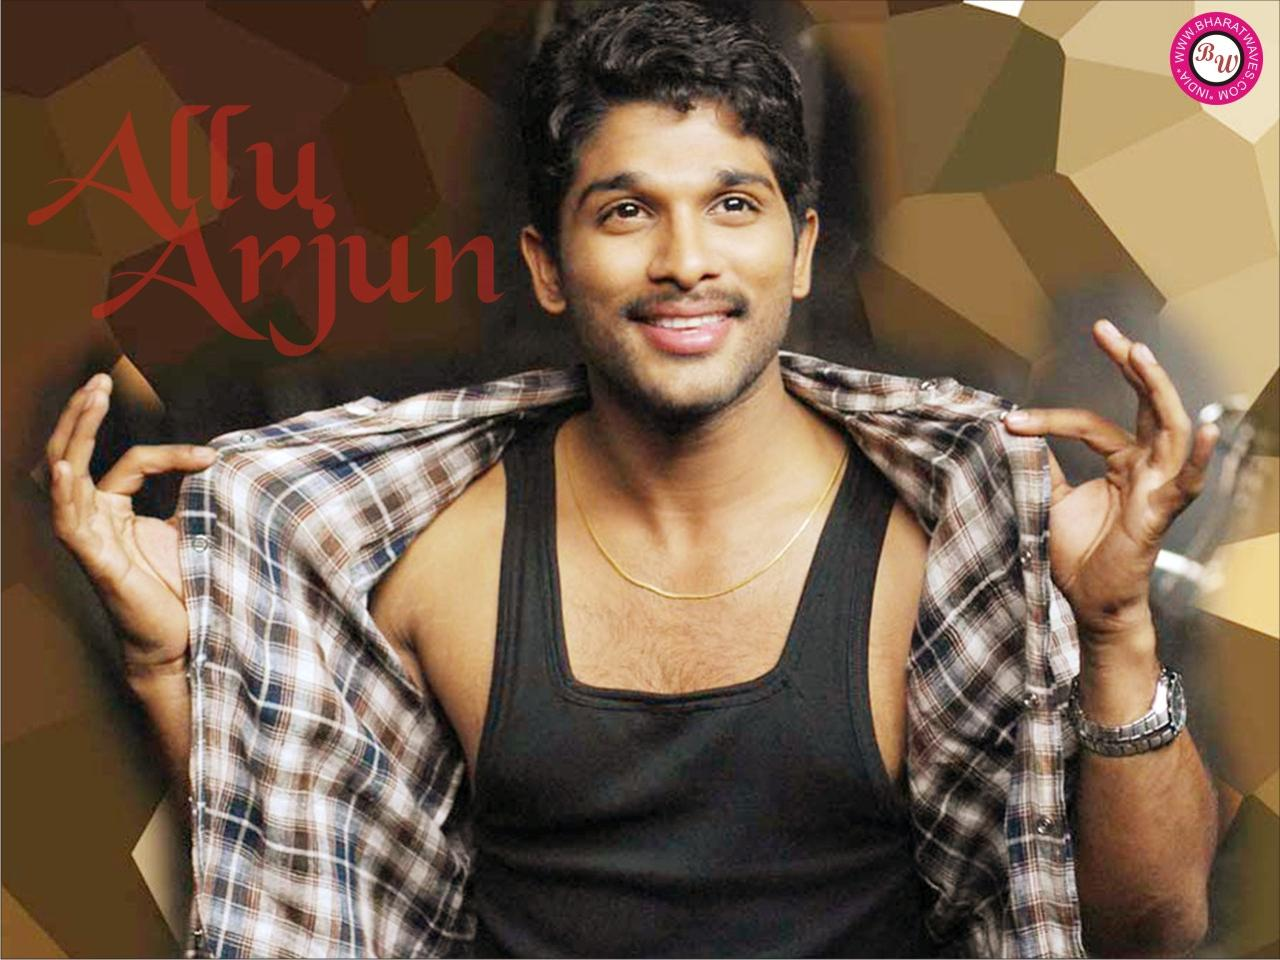 Allu Arjun Wallpapers